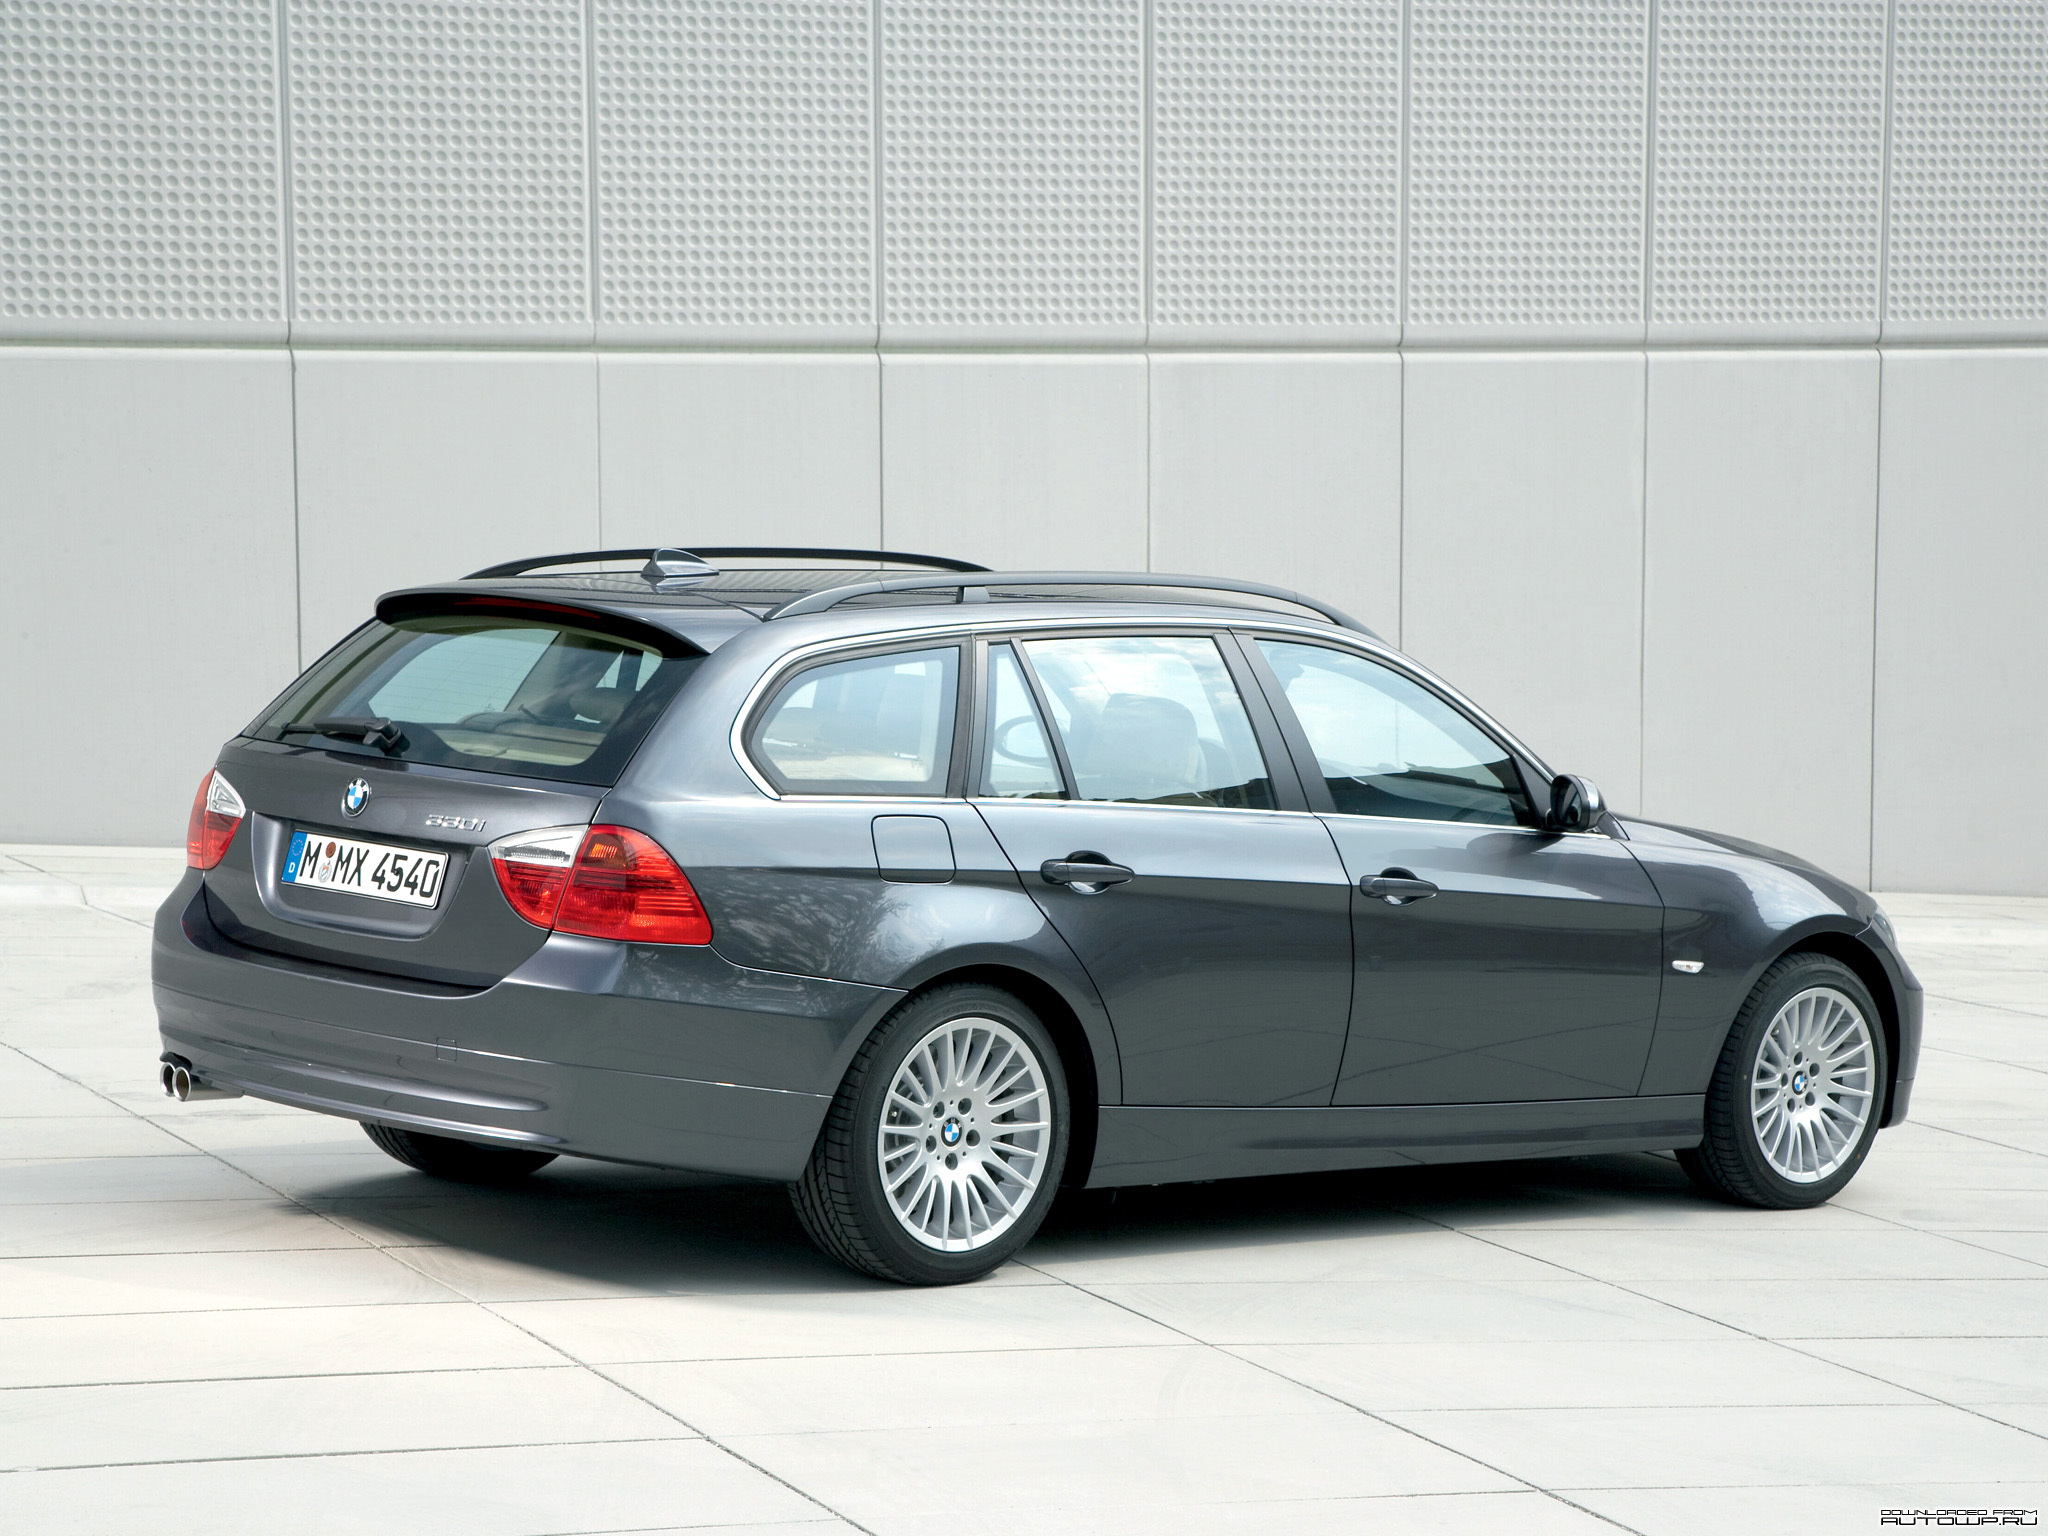 BMW 3-series E91 Touring photos - PhotoGallery with 61 ...